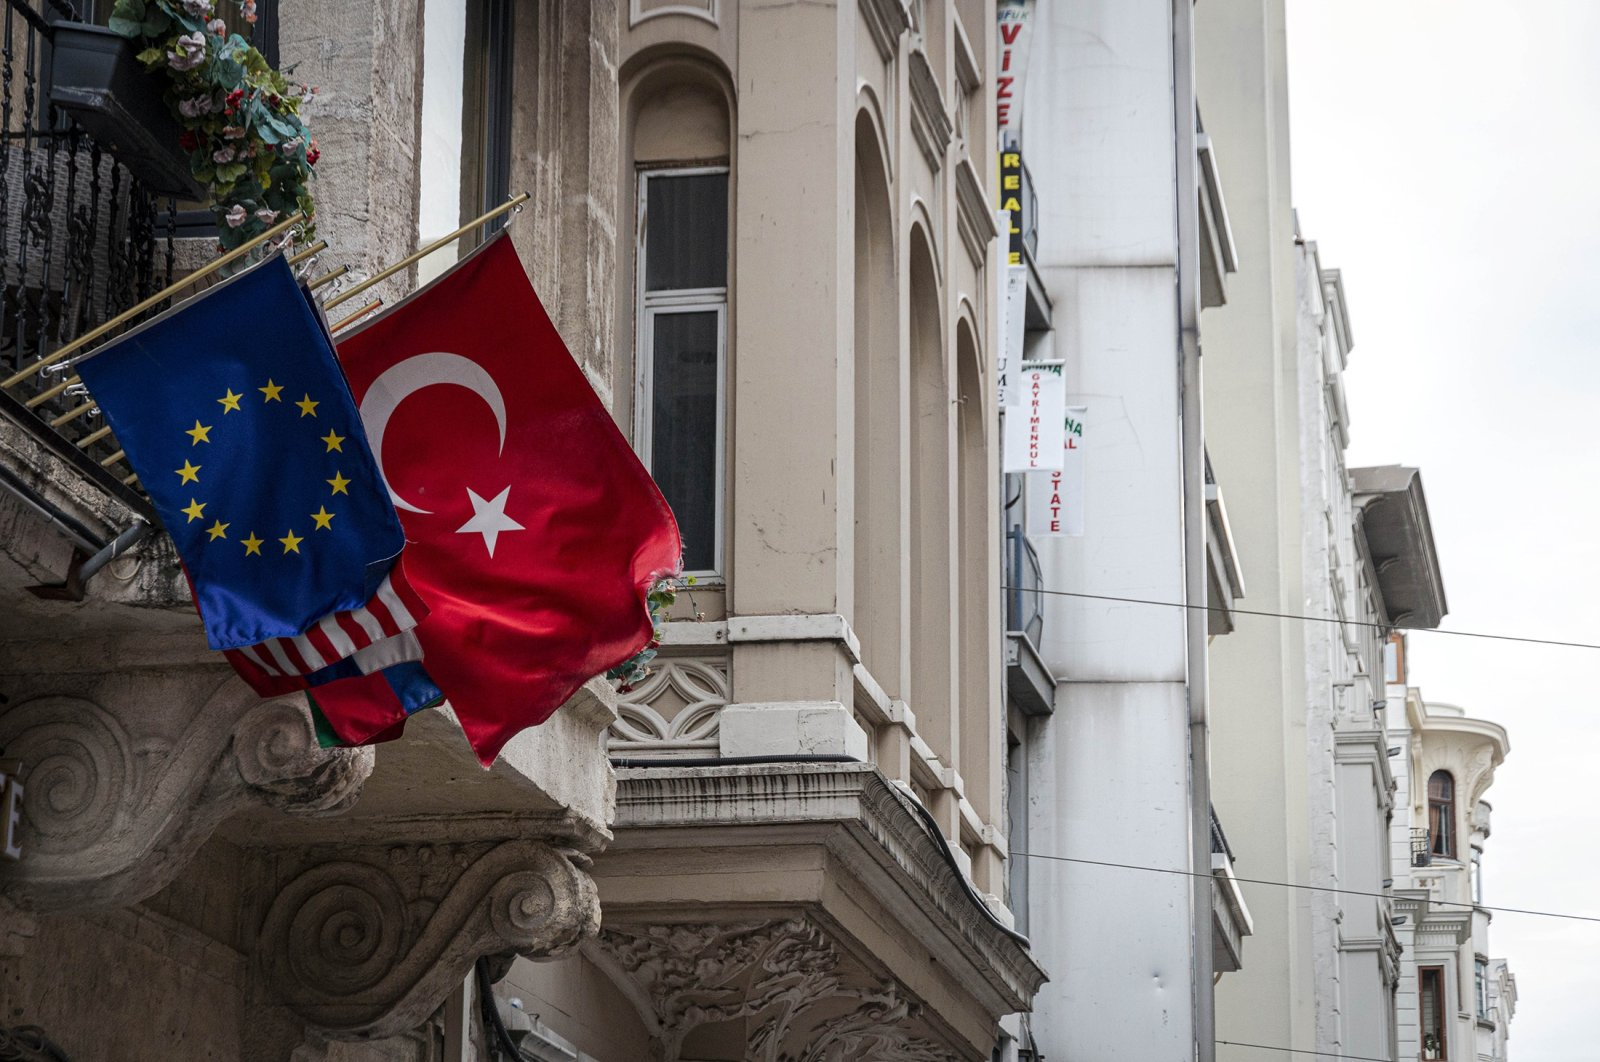 The European Union and Turkish flags fly side by side on Istiklal Avenue, in Istanbul, Turkey, Sept. 5, 2020. (Getty Images)